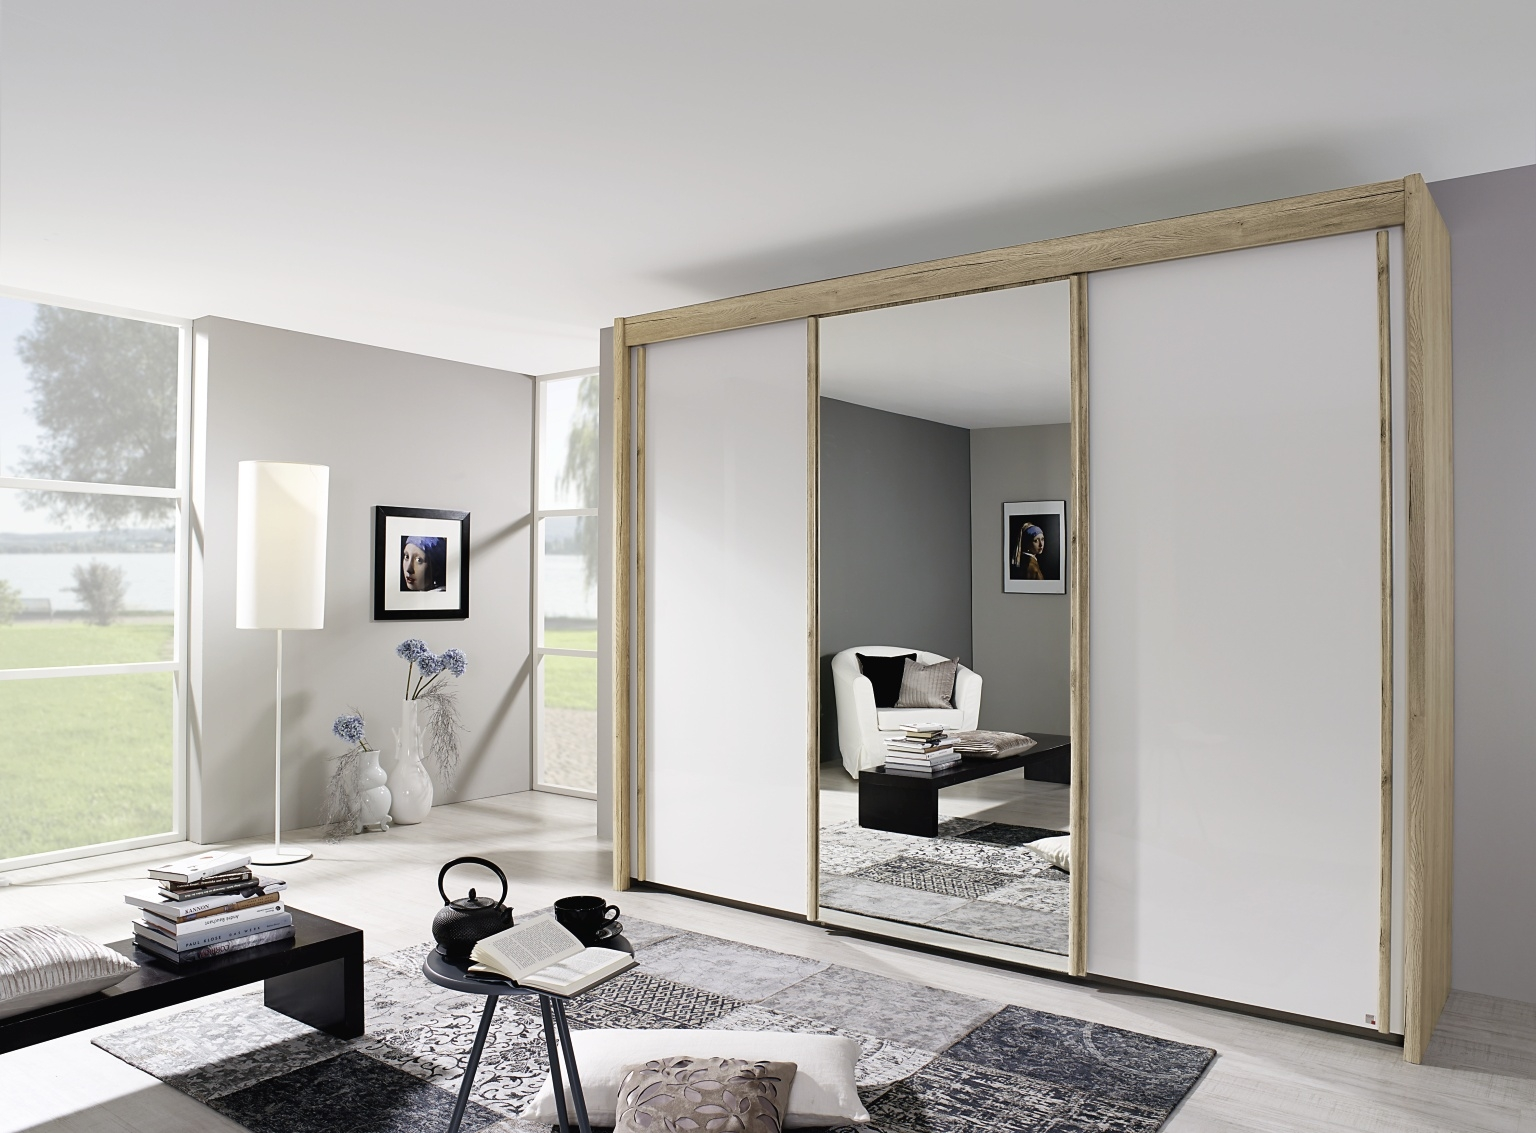 Rauch Imperial Sanremo Light Oak 3 Door Sliding Wardrobe with High Polish White Front with 1 Mirror W 225cm